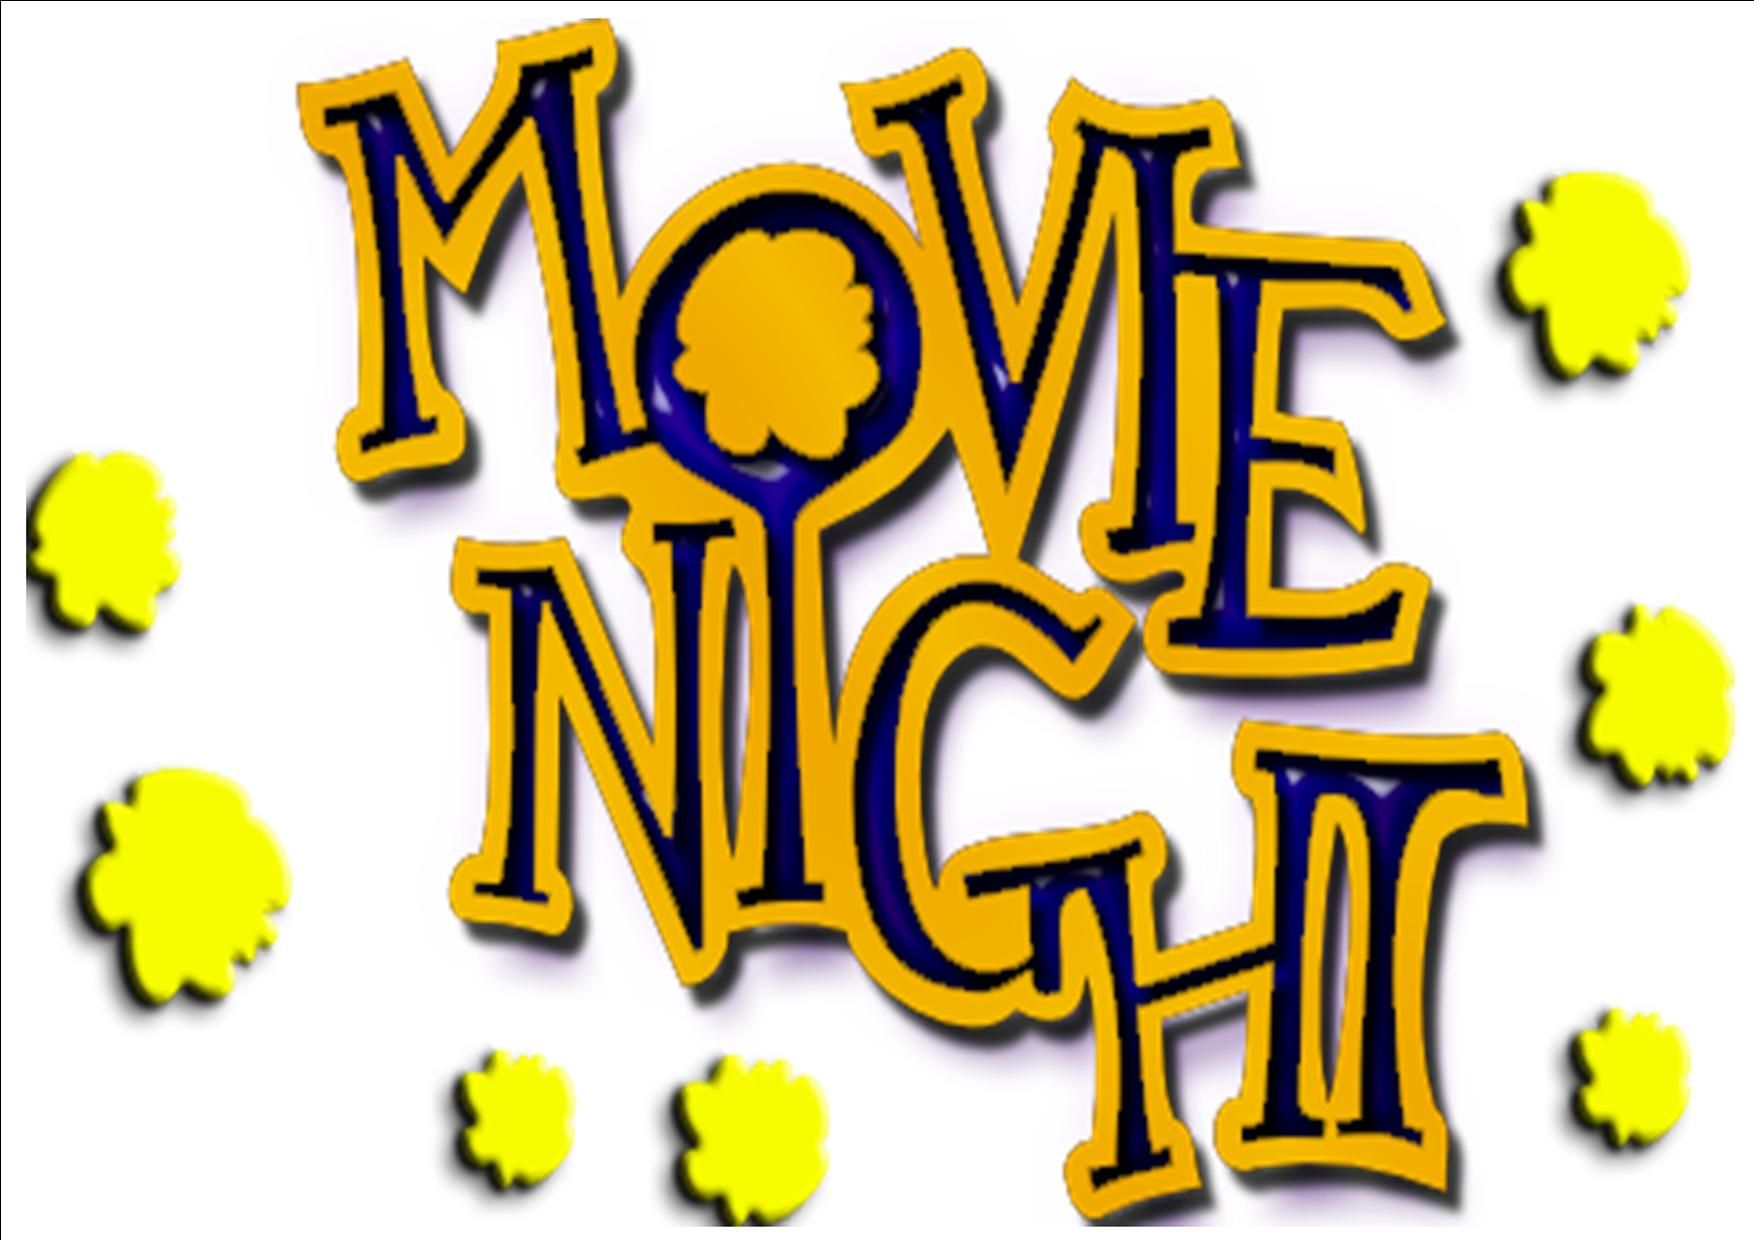 pictures movie night clip art free hh pinterest clip art free rh pinterest com free movie clipart for powerpoint free movie clipart downloads